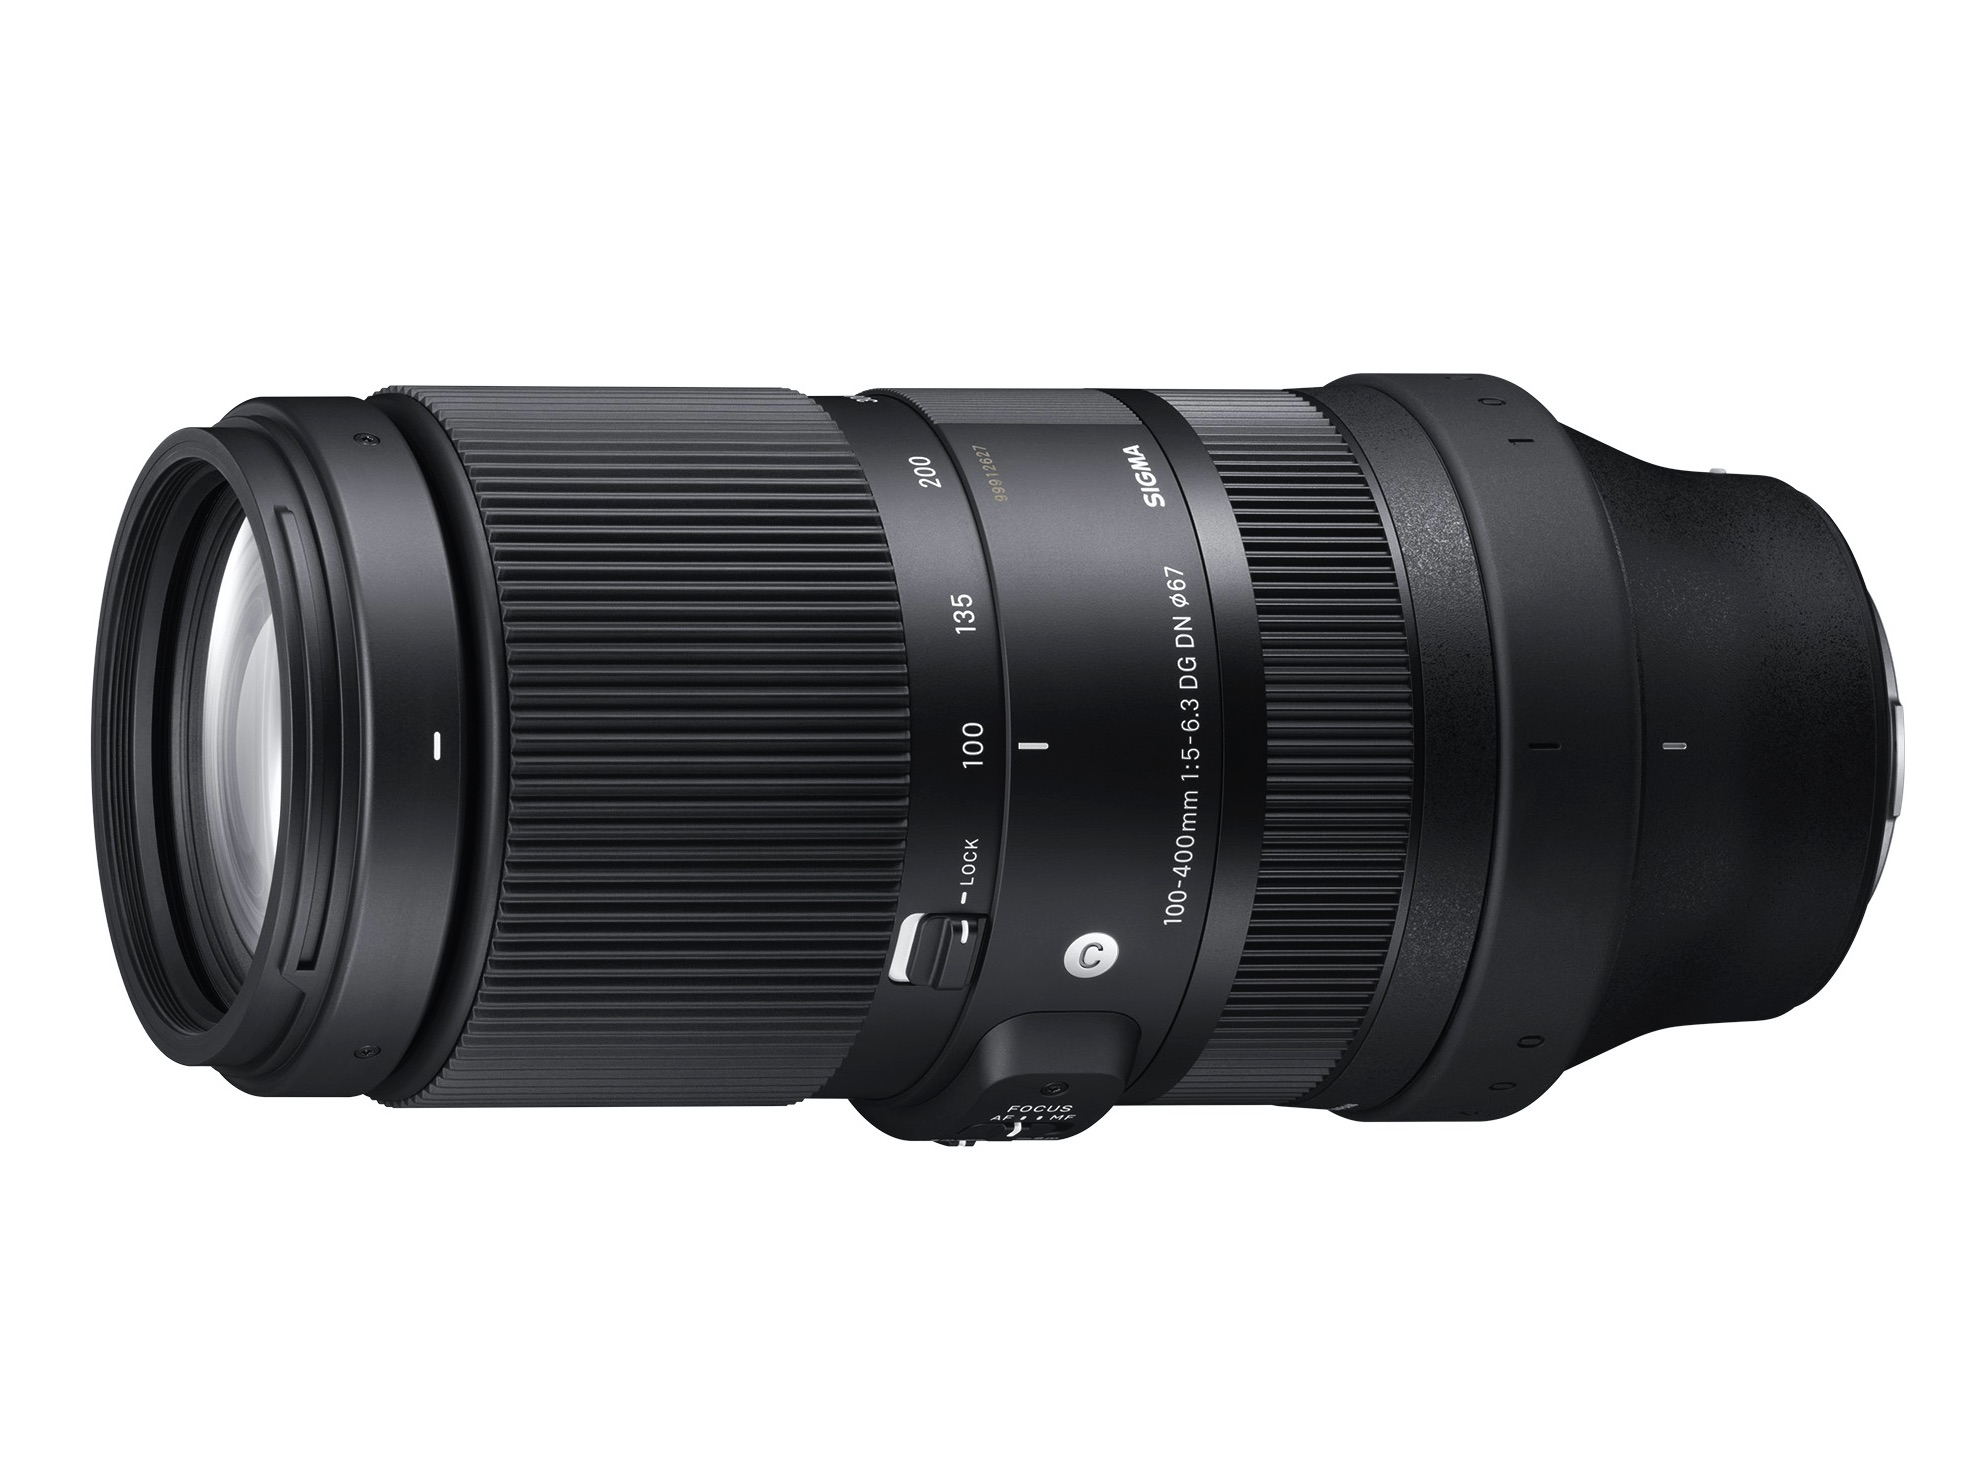 Sigma Announces 100-400mm F5-6.3 DG DN OS Contemporary